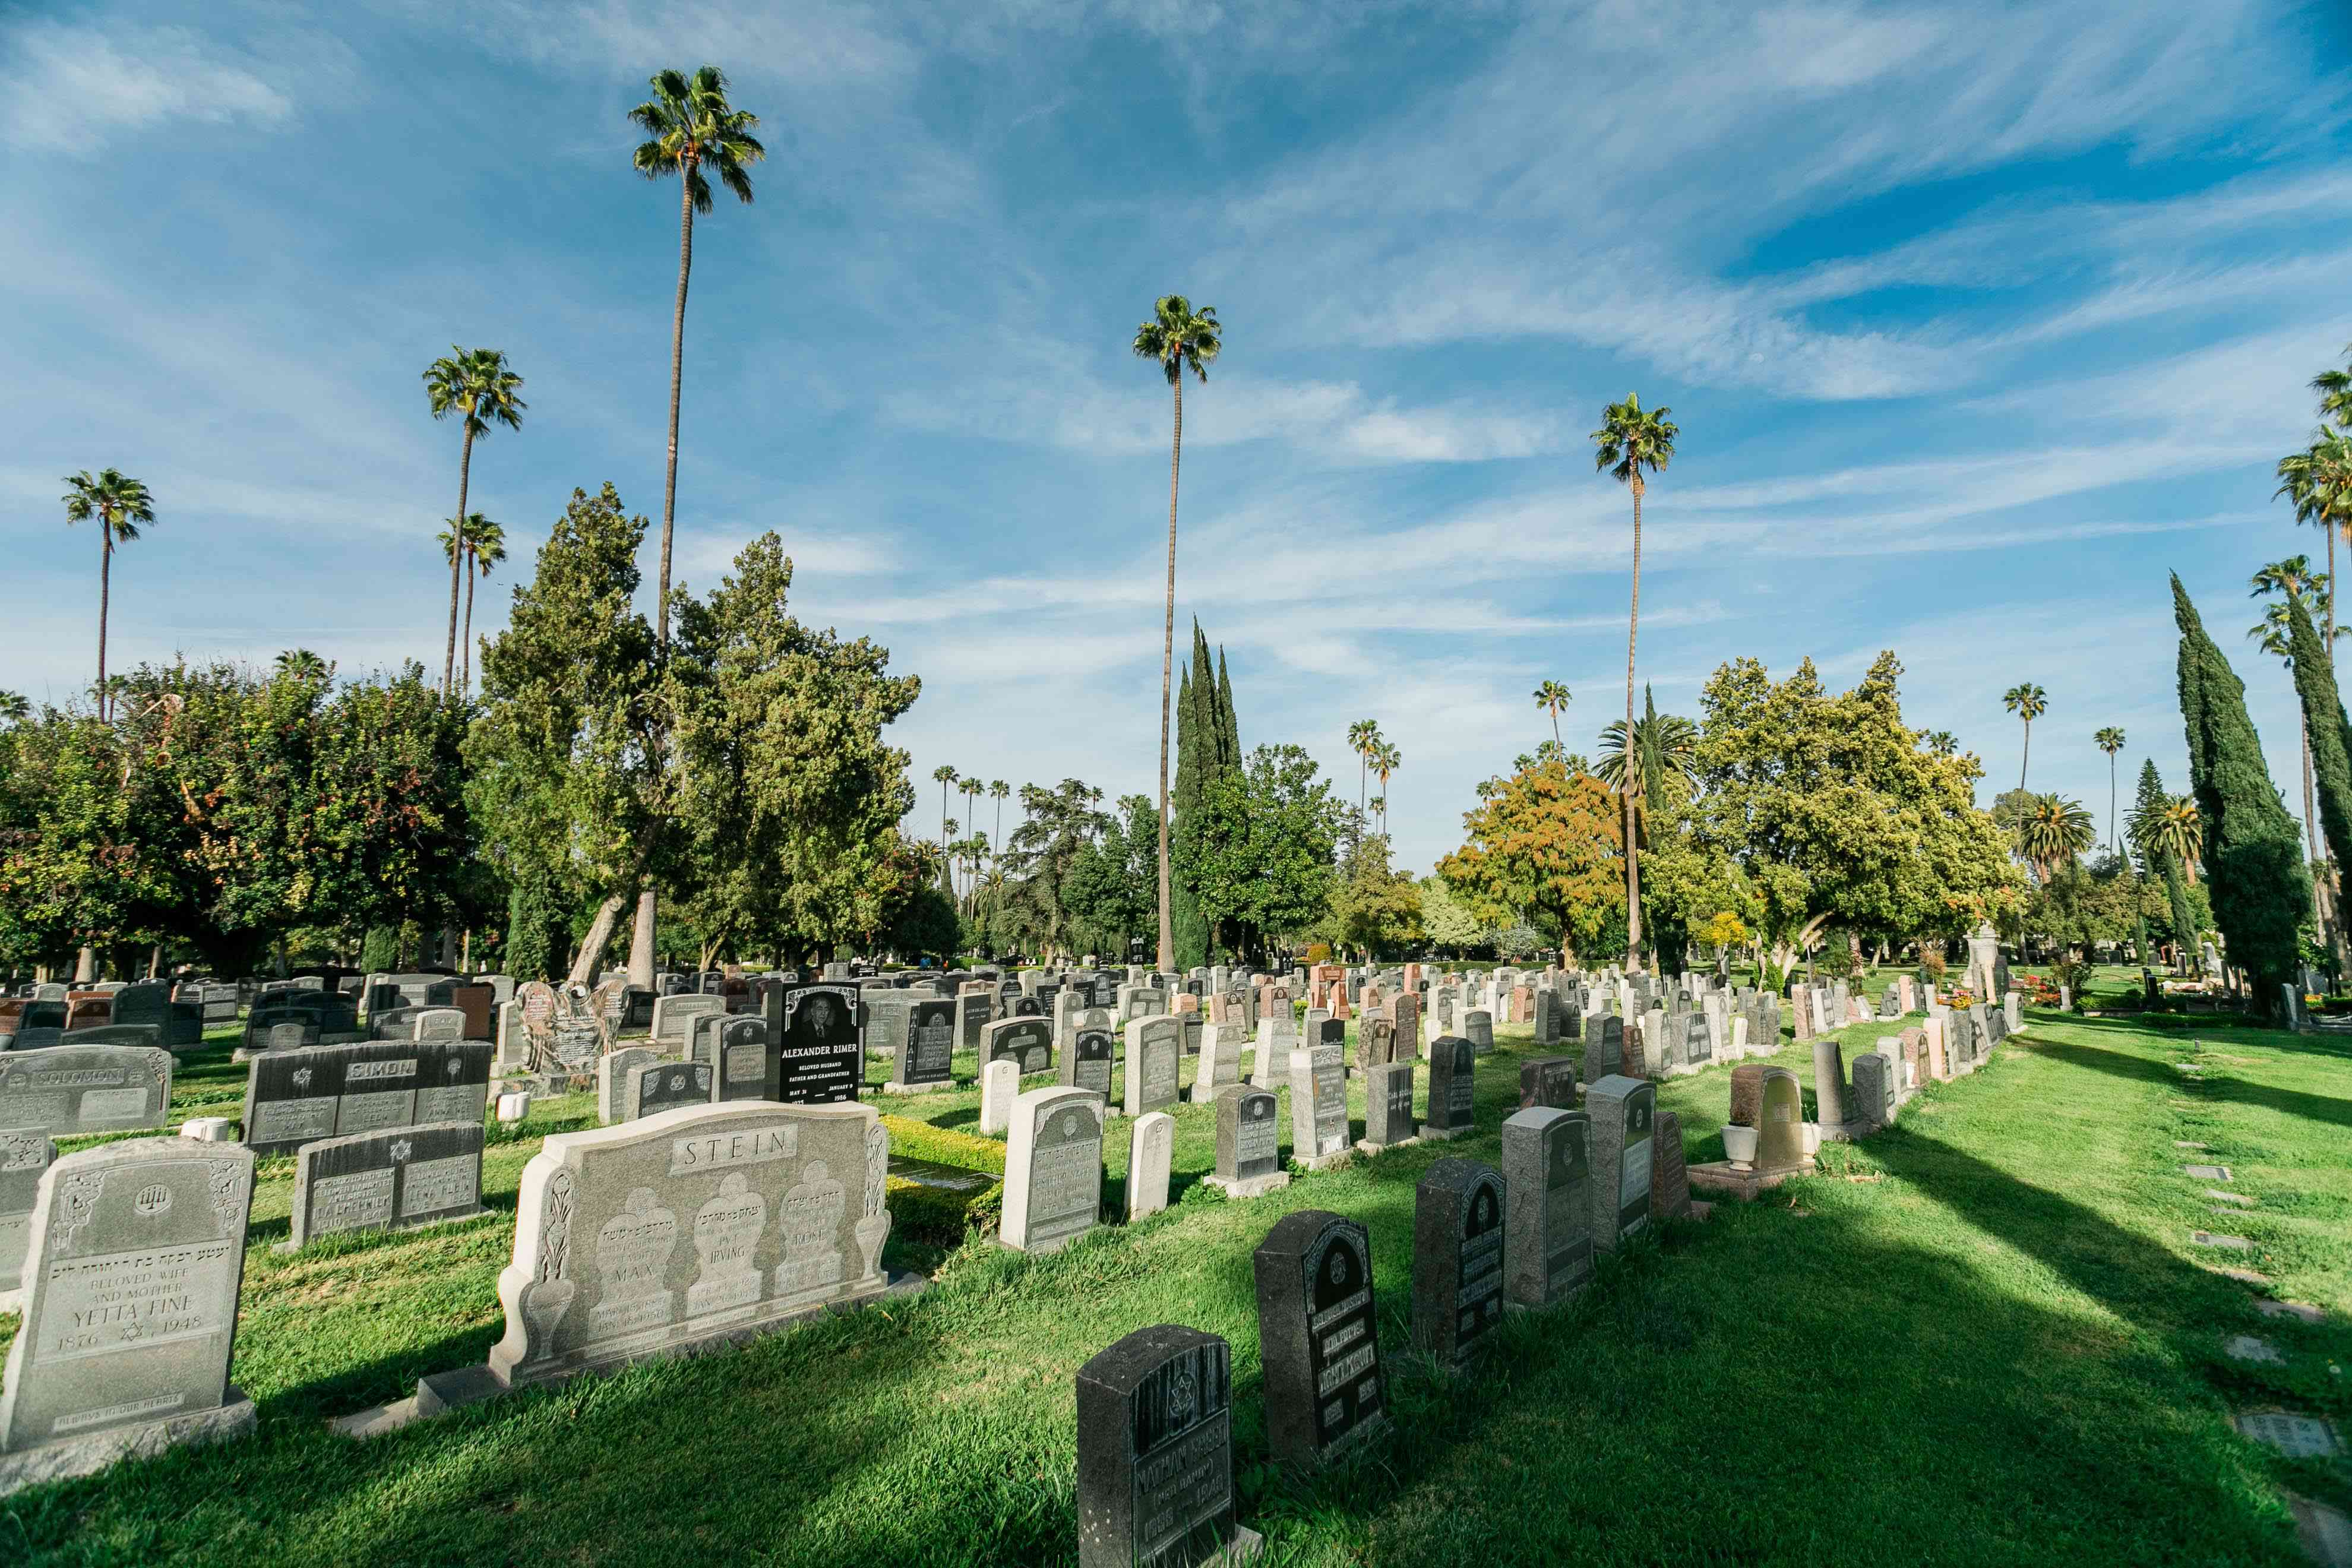 Hollywood Forever Cemetery in Los Angeles, CA